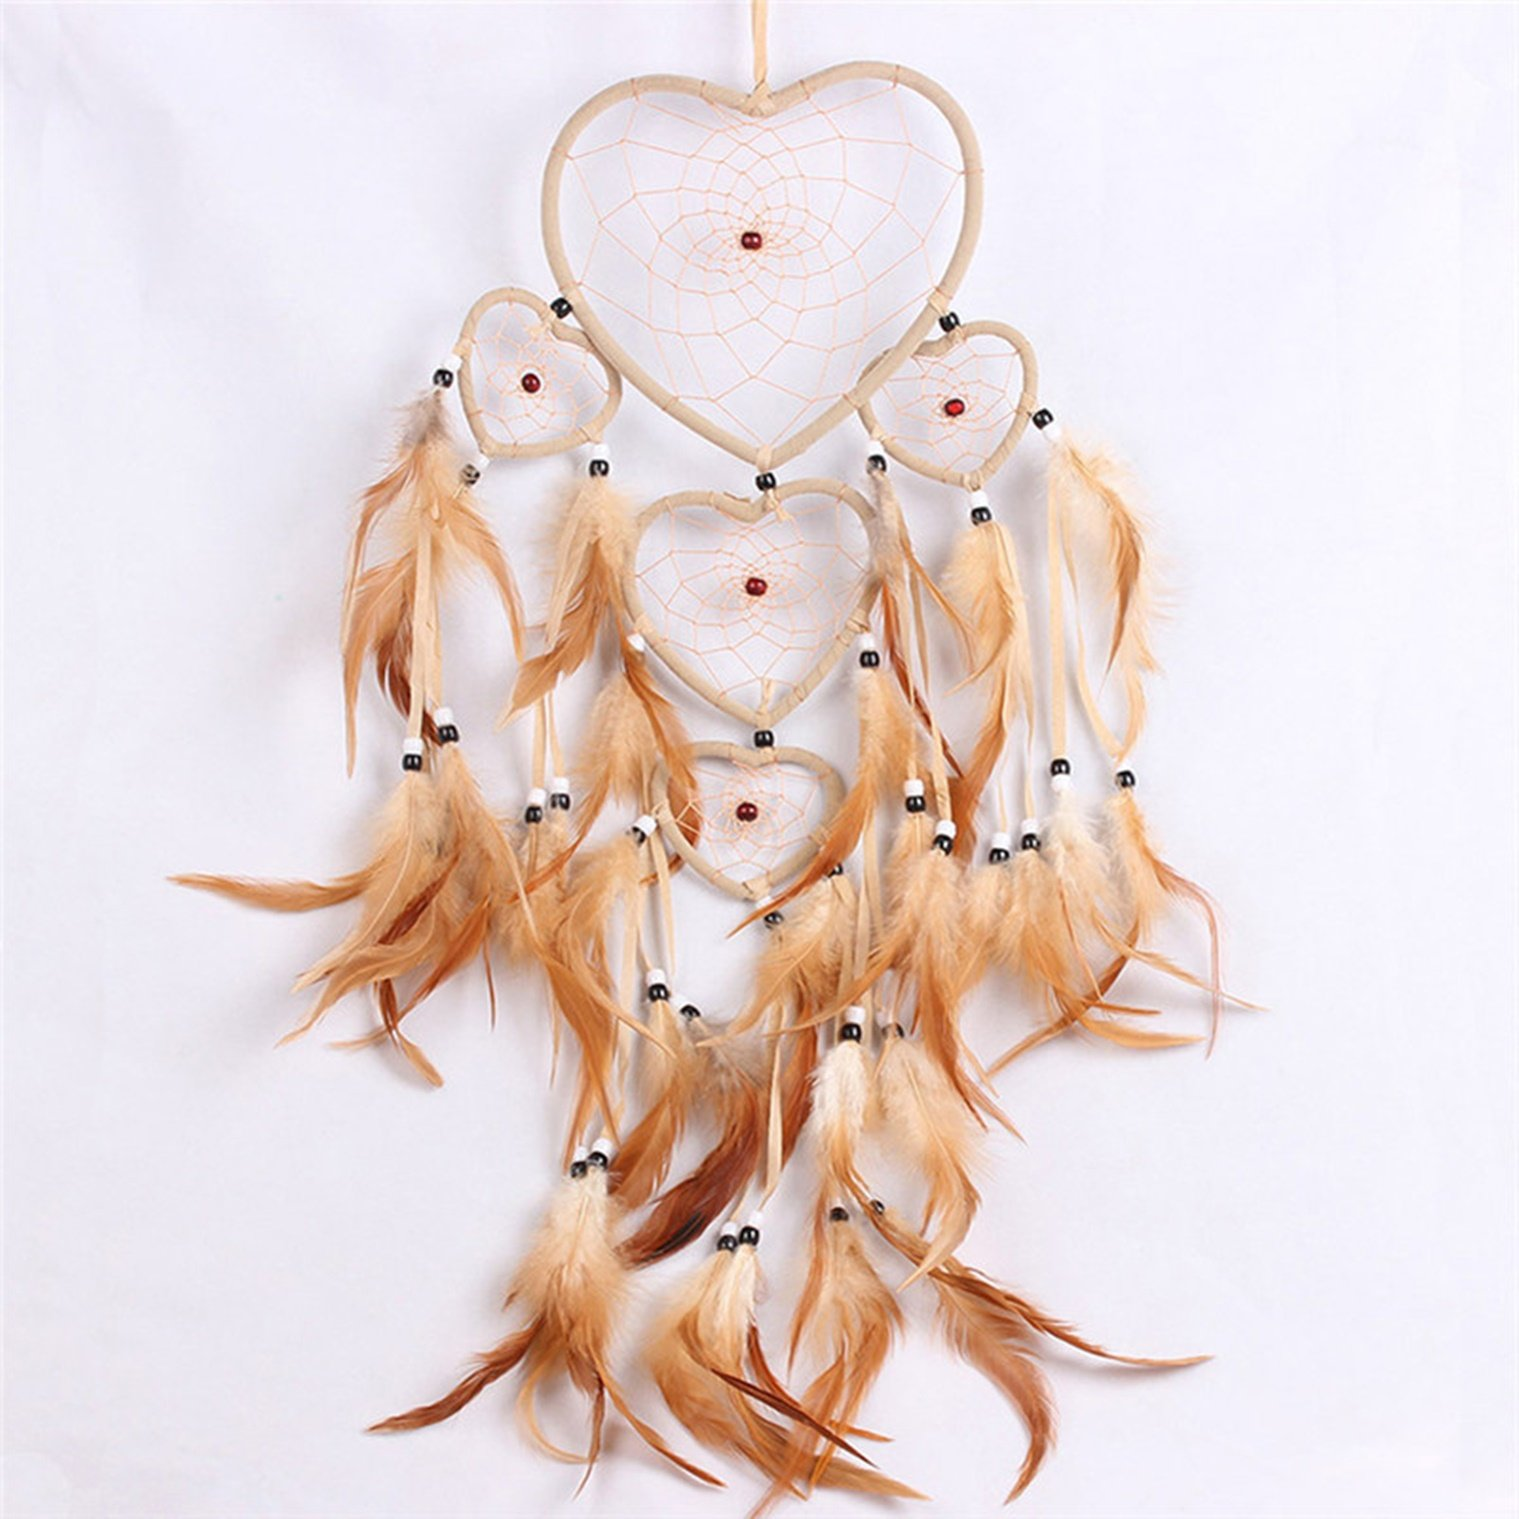 1 Pack Vintage Feather Bead Dream Catcher Ornament Gifts Mini Arts Craft Rainbow Owl Feathers Hanging Nursery Bedding Room Howling Popular Dreamcatchers Girls Bedroom Decor Car Wall Catchers Kit